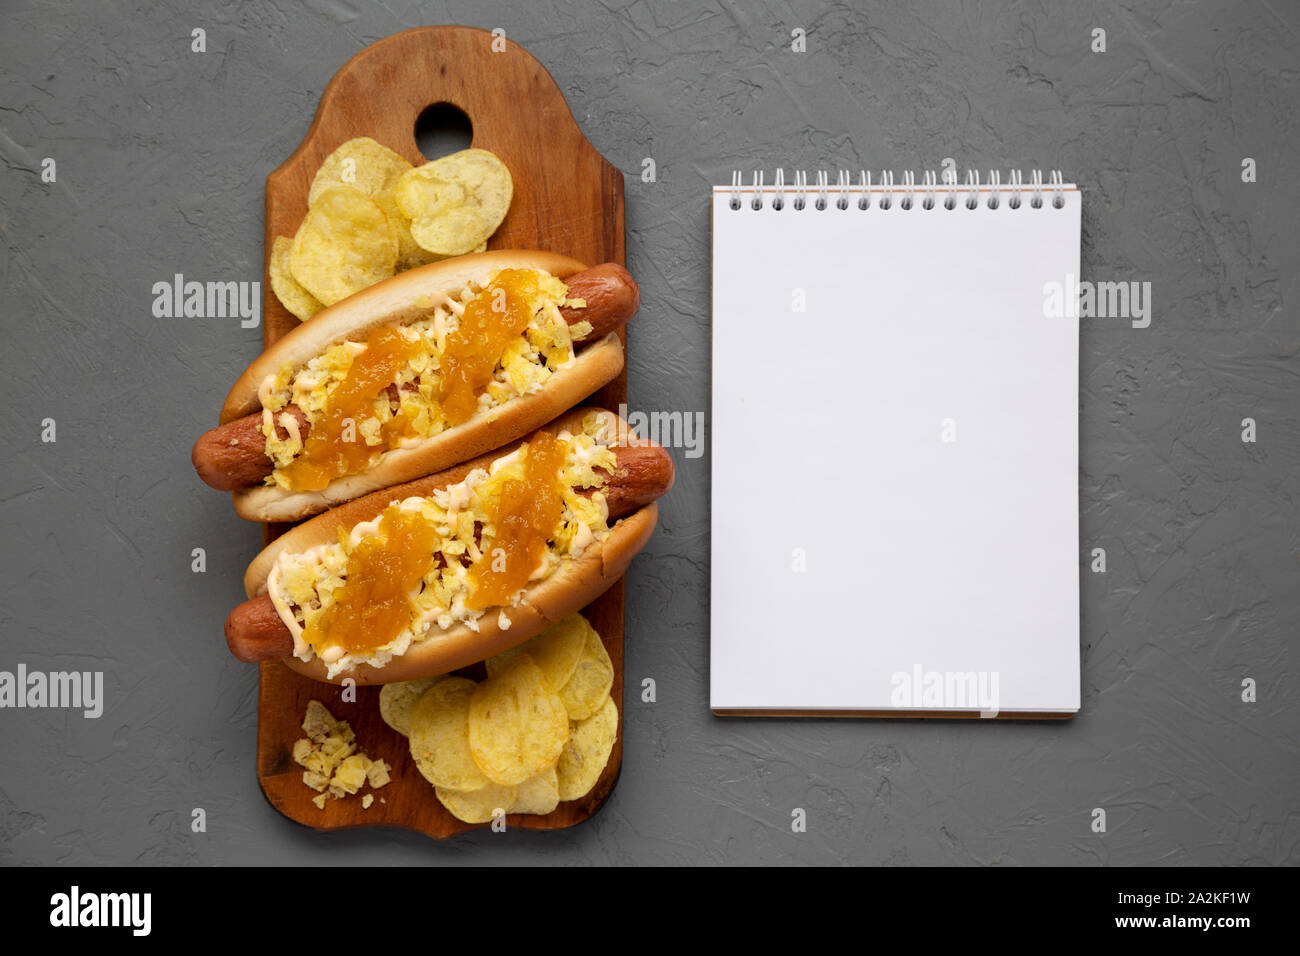 Homemade colombian hot dogs with pineapple sauce, chips and mayo ketchup on a rustic wooden board, blank notepad on a gray background. Flat lay, from Stock Photo